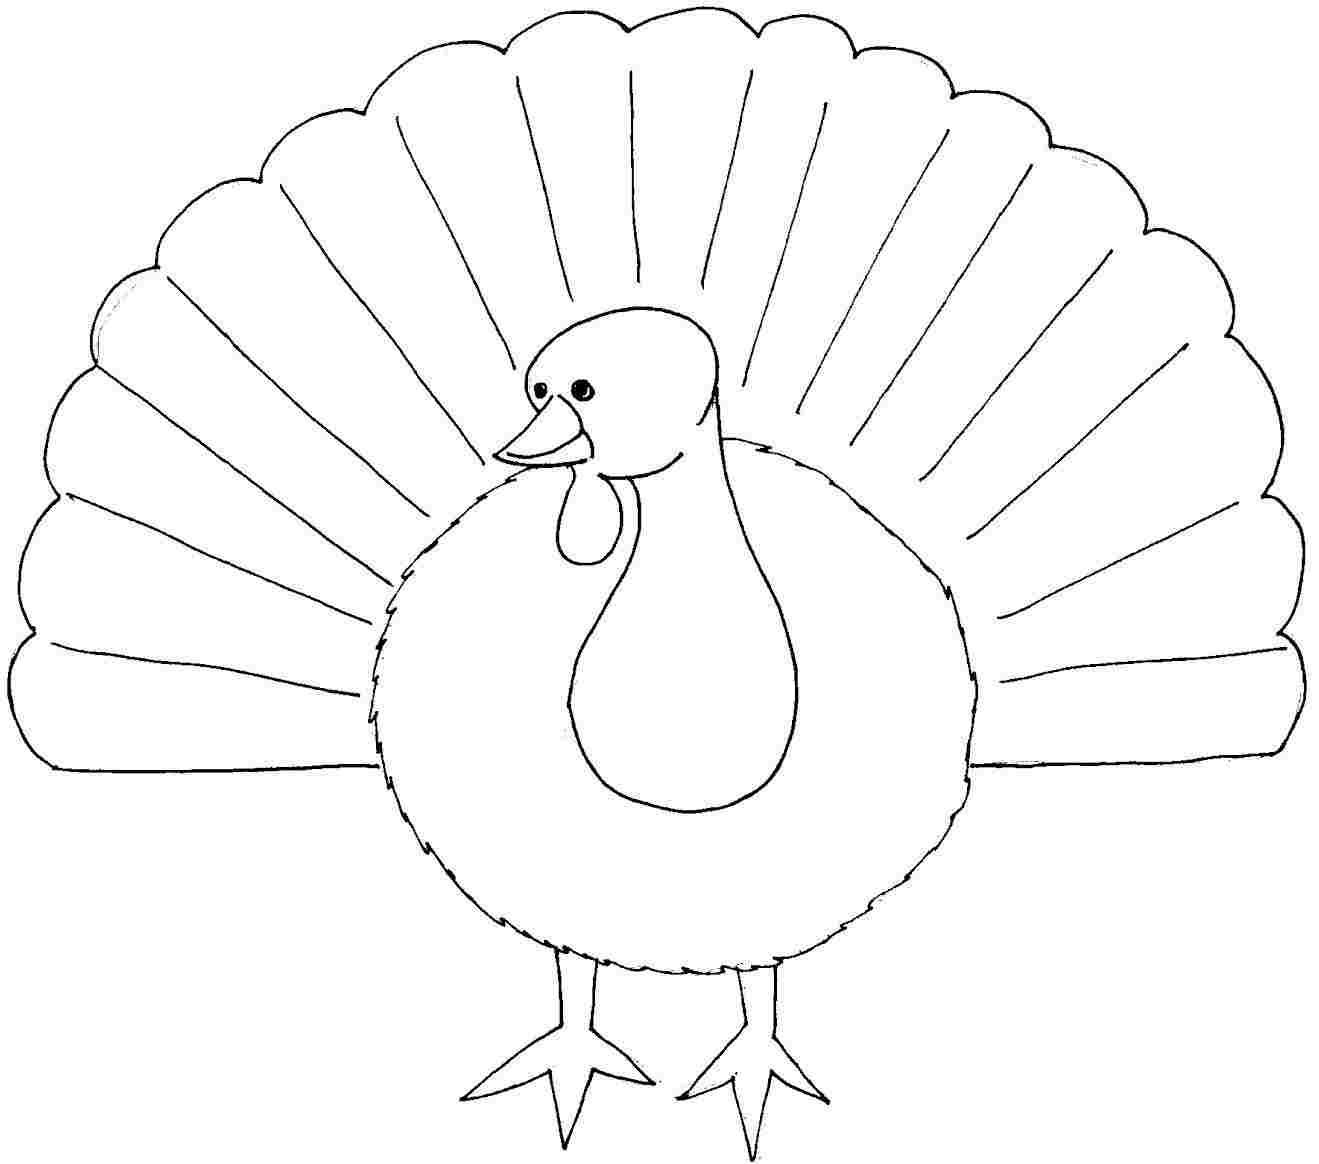 Printable Free Thanksgiving Turkey Colouring Pages For Kids Boys